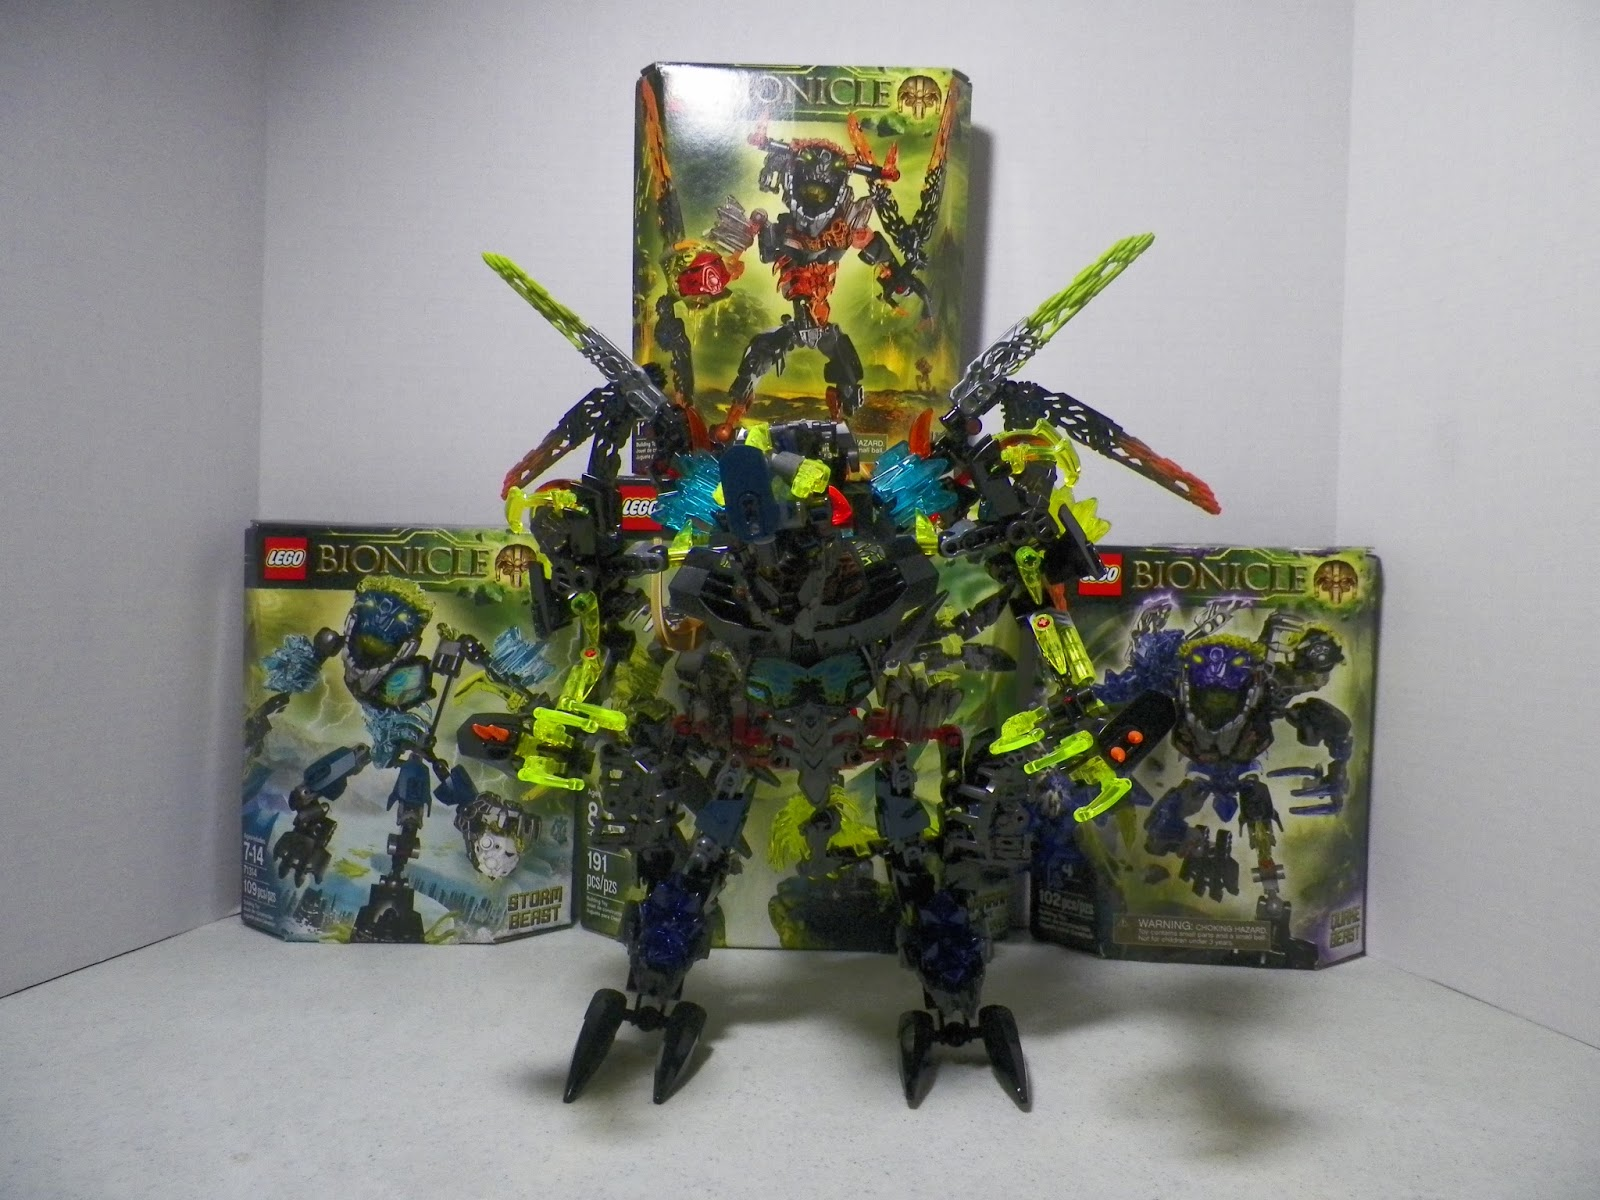 Lego Bionicle Summer 2015 Official Set Images G2 Review Skull Scorpio 70794 Monarth Sadrak King Of Beasts